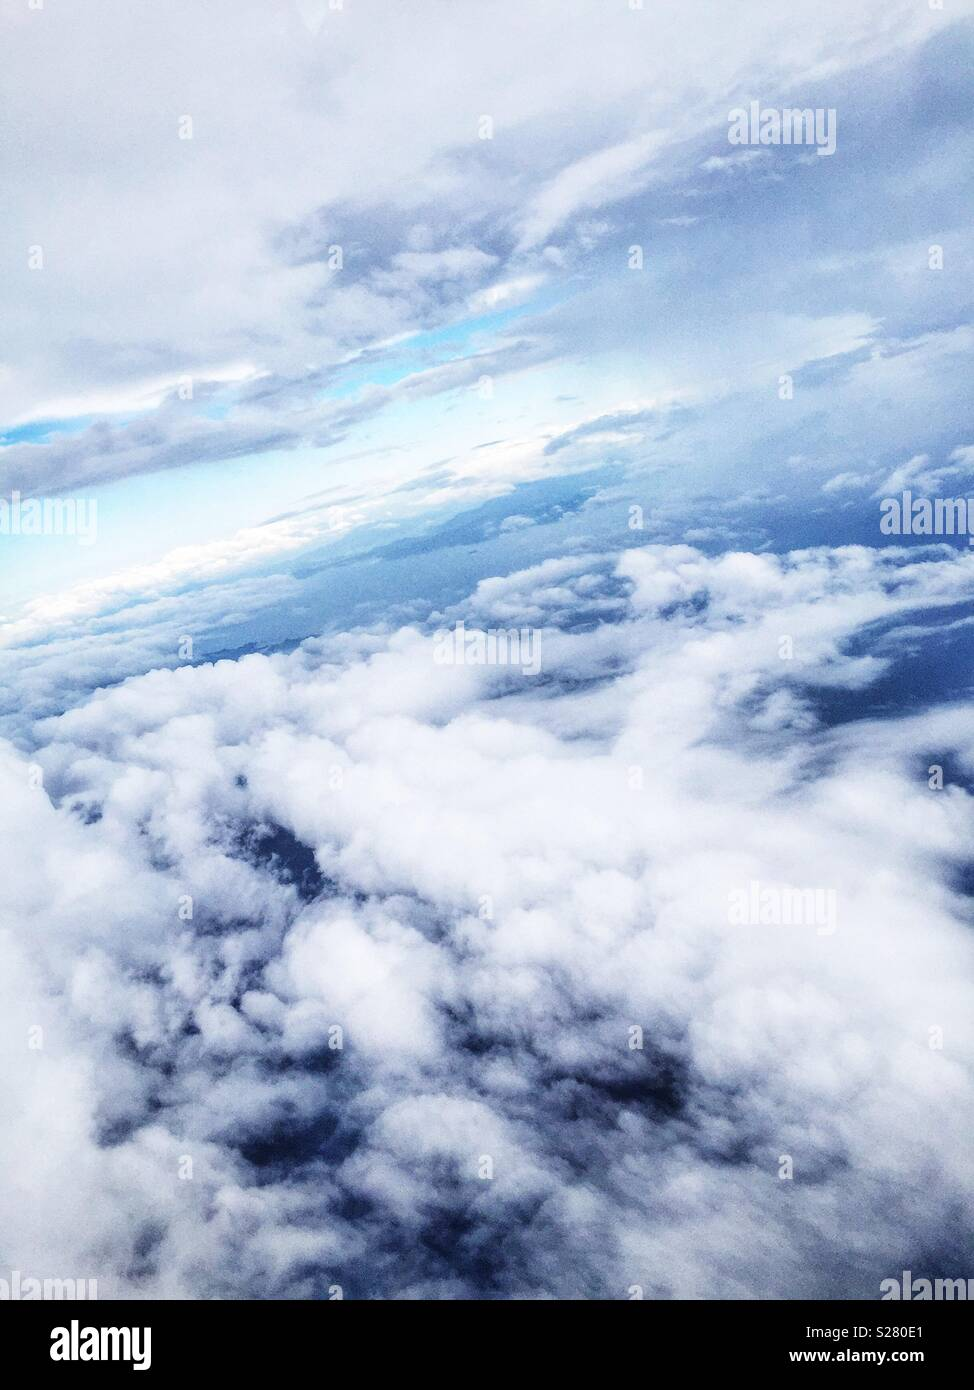 Clouds over the South China Sea - Stock Image